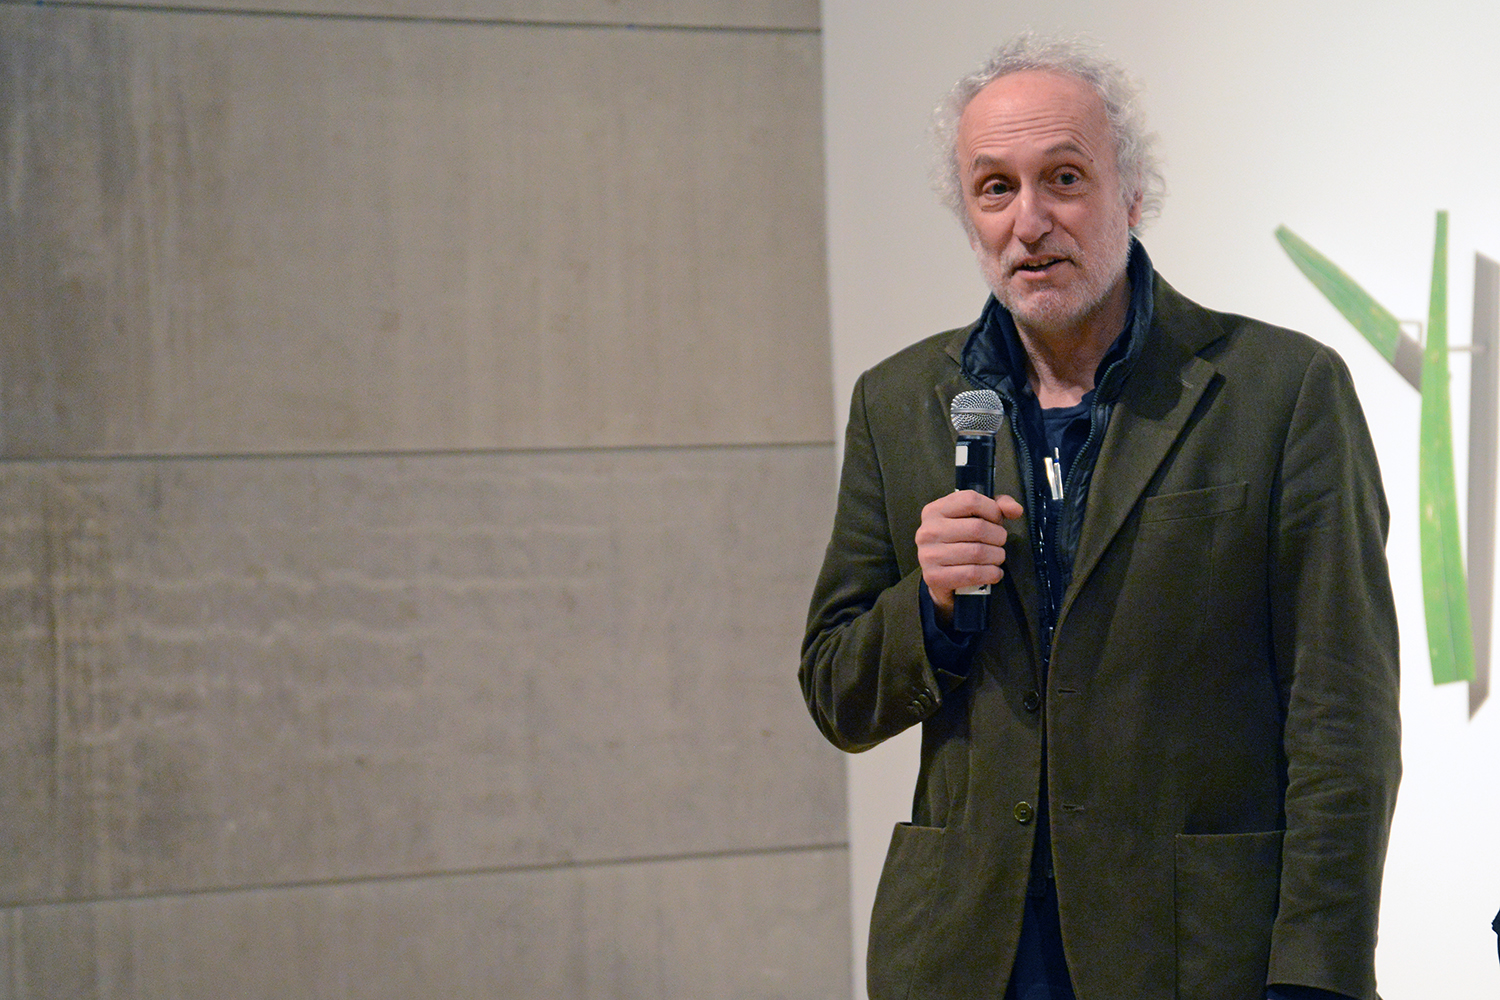 Jeffrey Schiff explained how the artists included in the exhibition take varying approaches to material, technology, and presentation, expanding and redrawing the traditional perimeters of both.